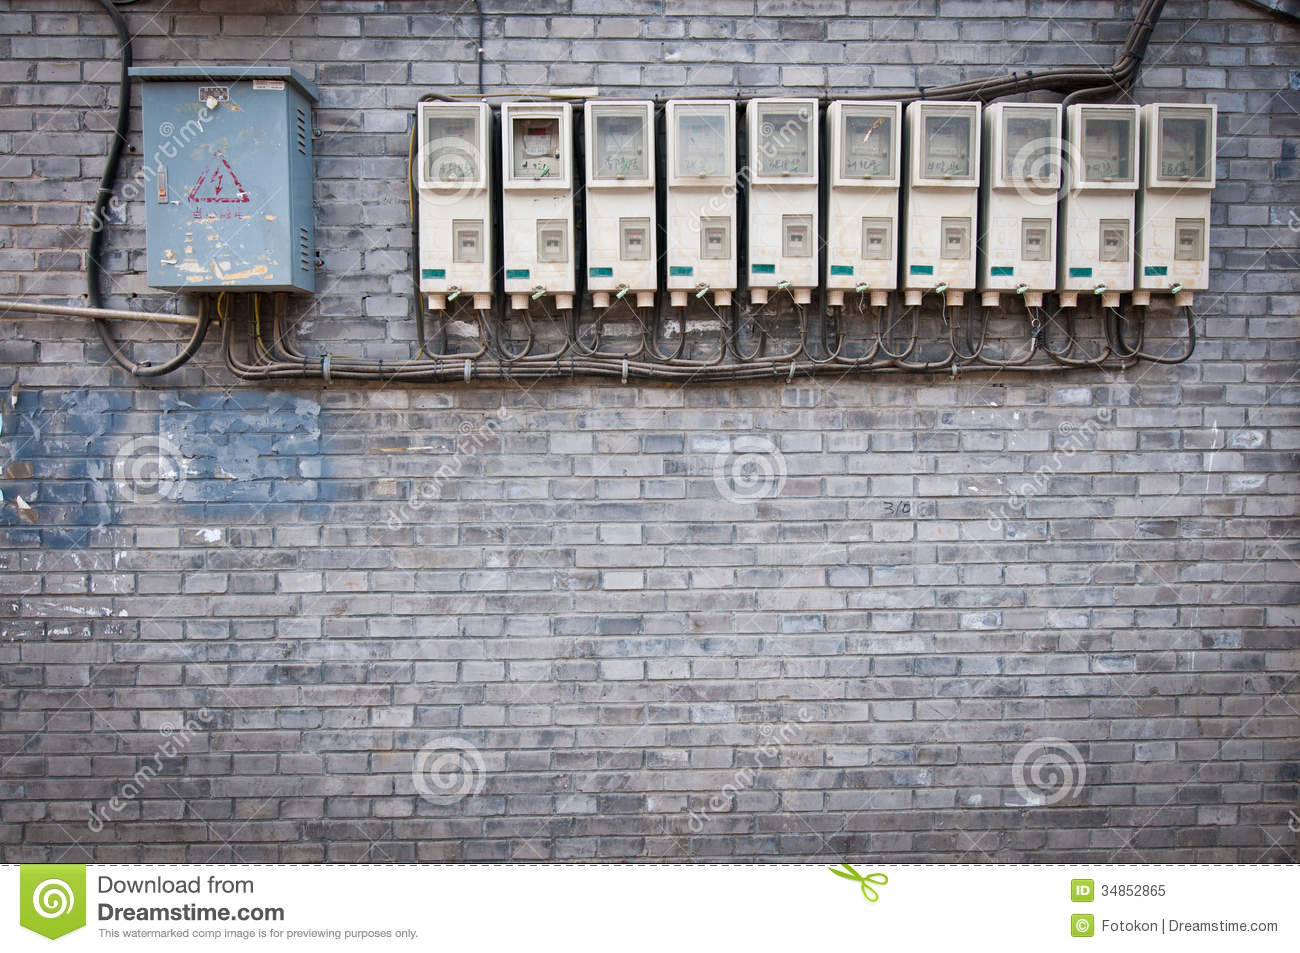 Cartoon House Fuse Box Trusted Wiring Diagrams Electrical Electricity Boxes And Meters In Apartment Building Stock Home Diagram